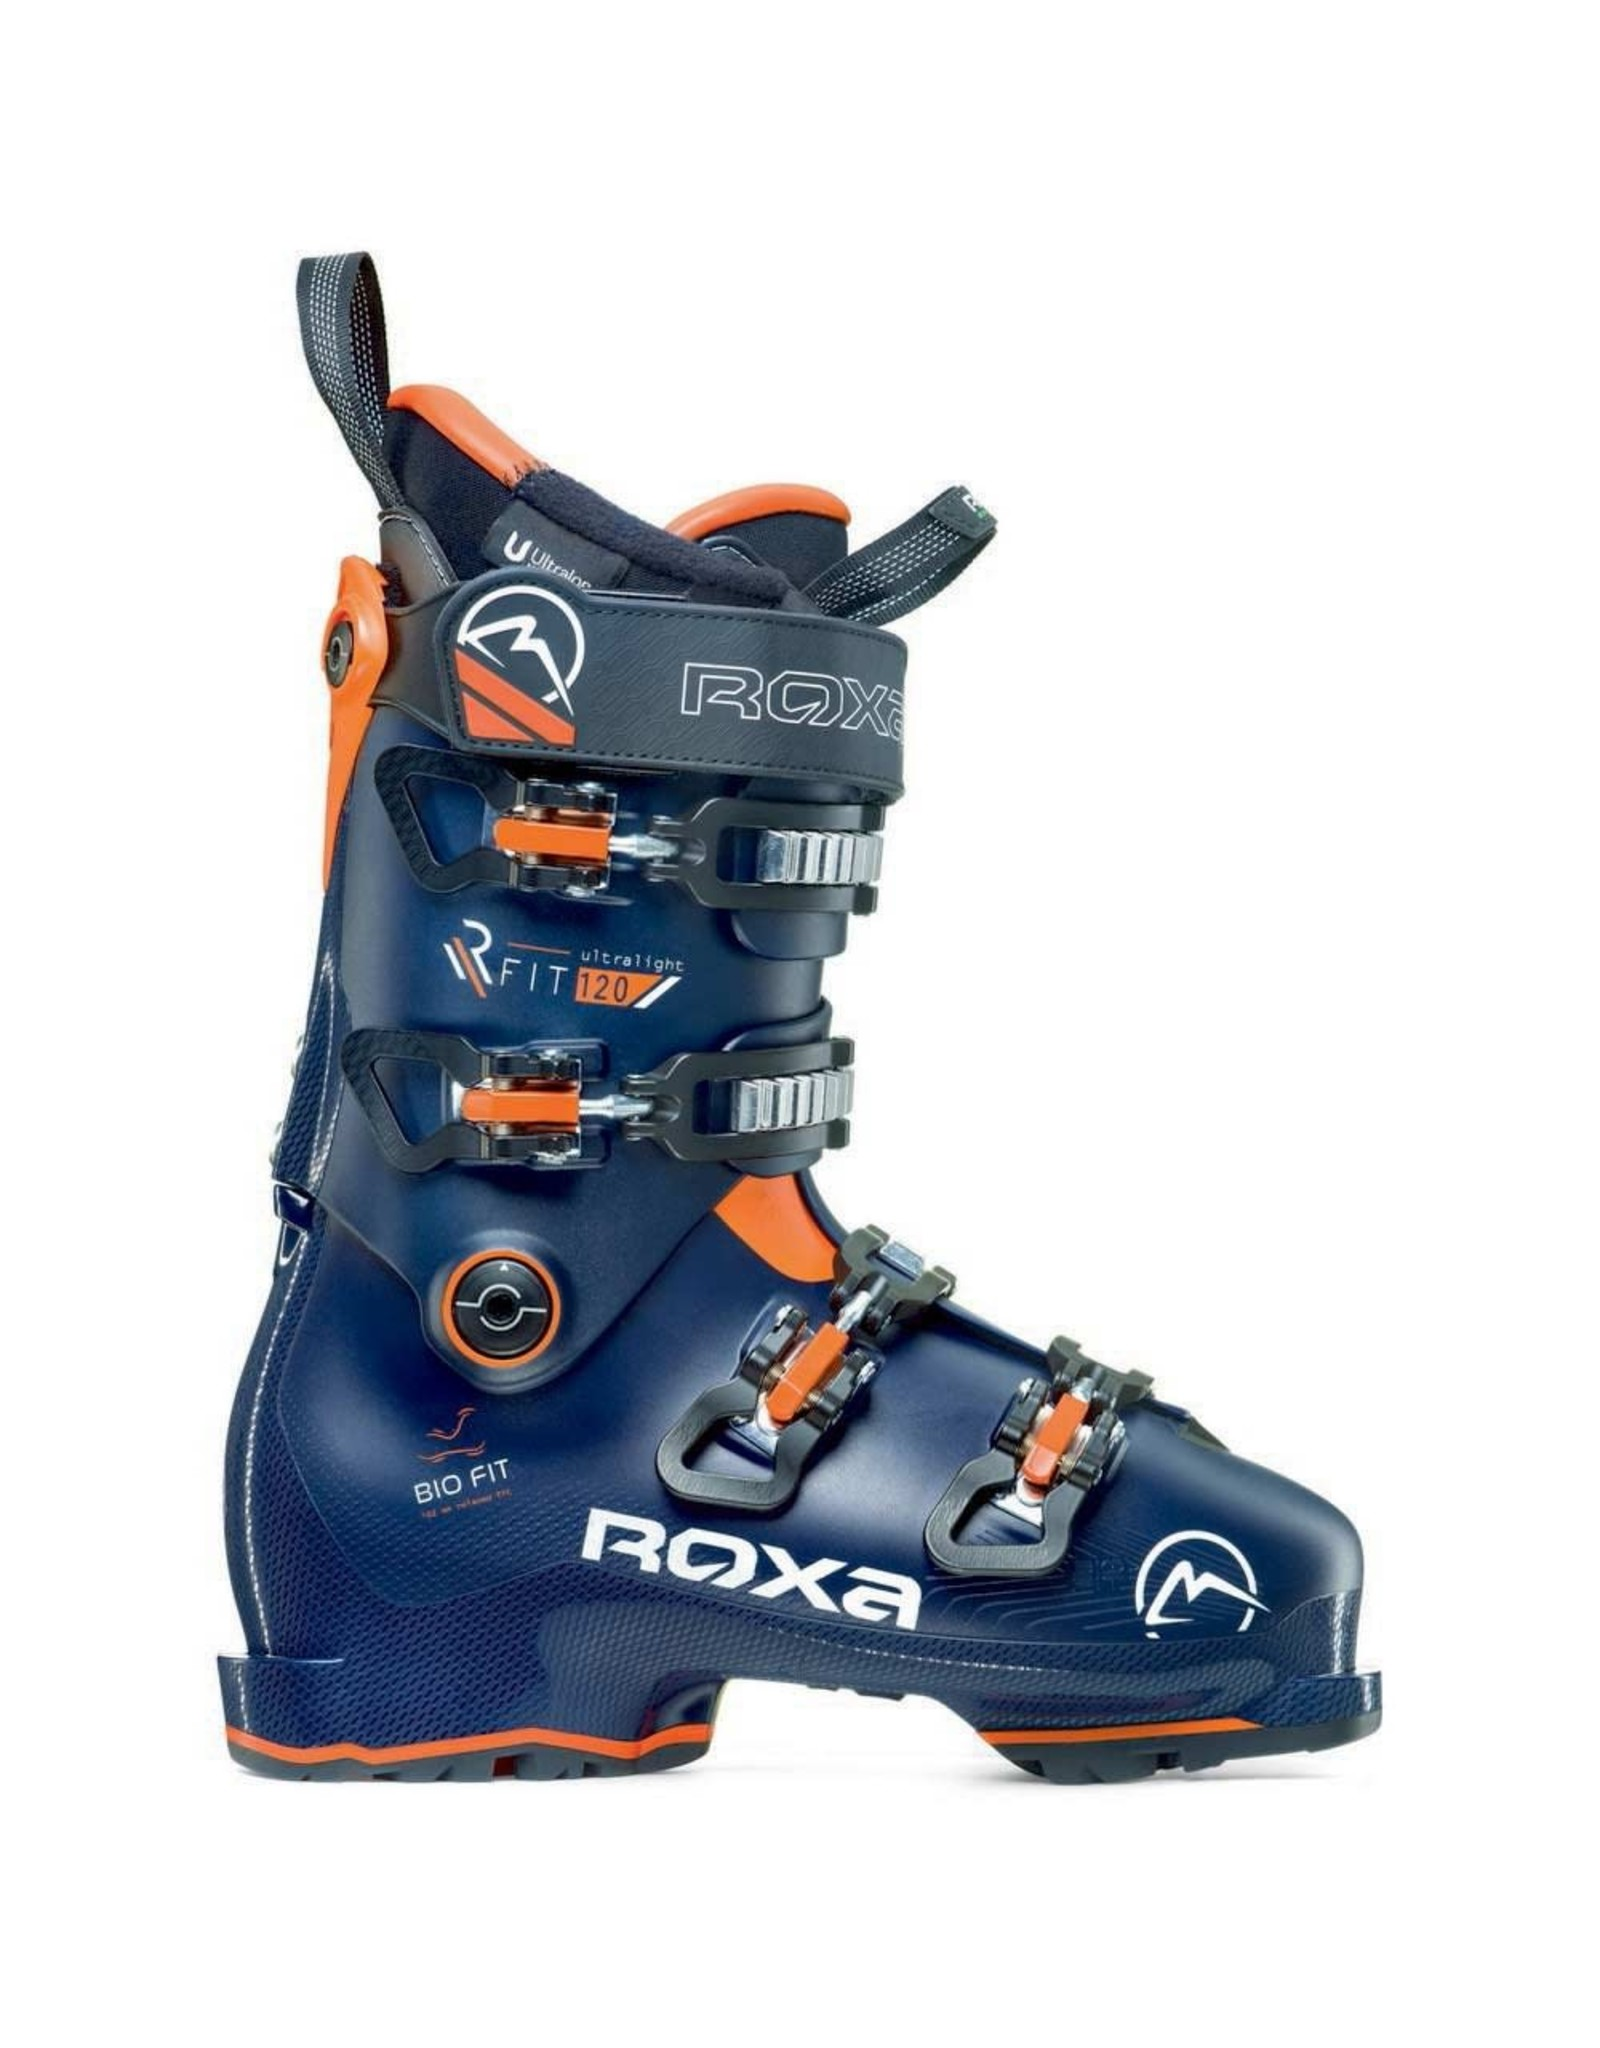 Roxa R/Fit 120 Boot